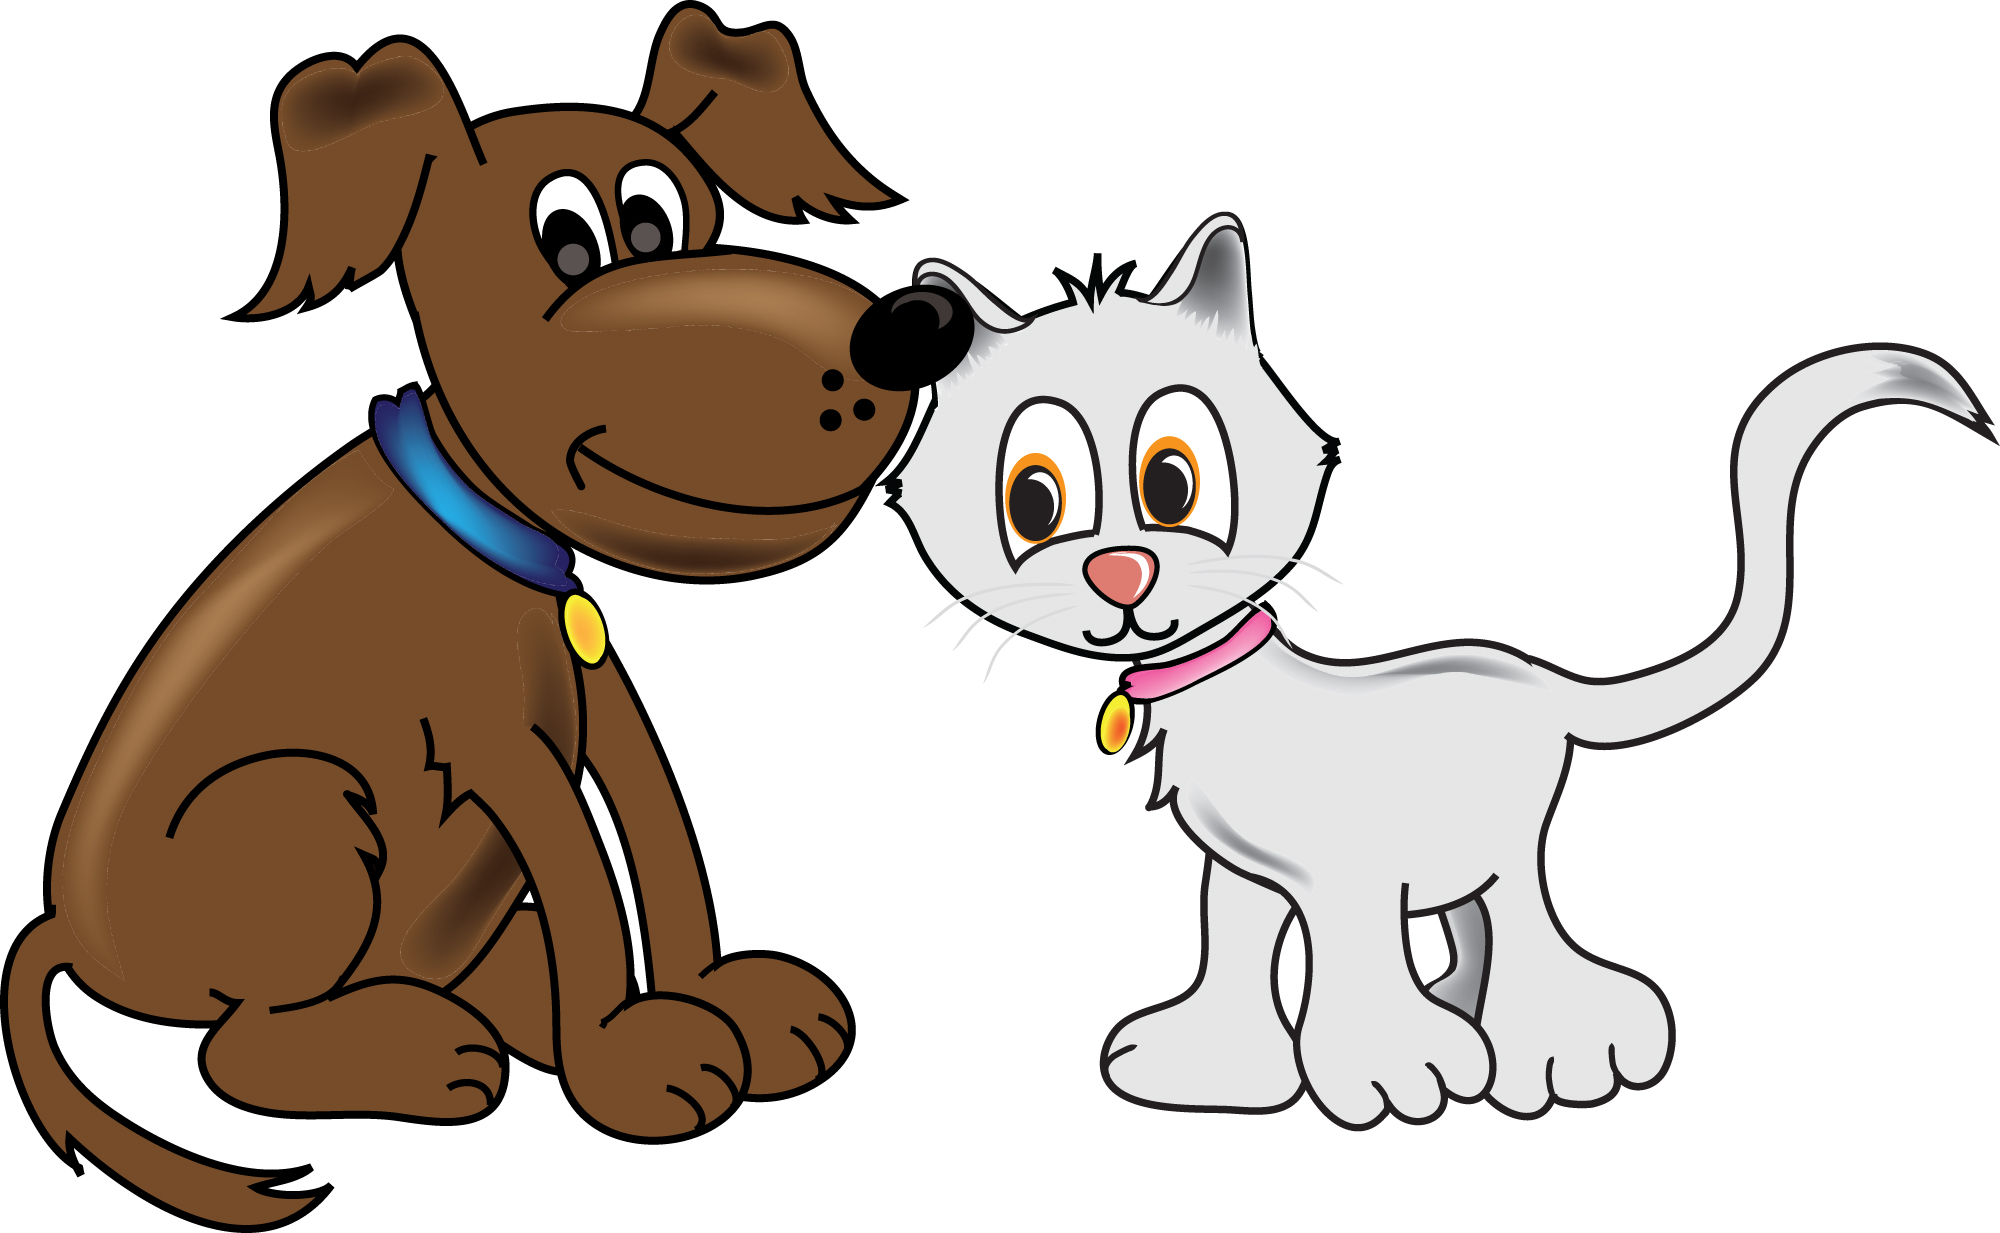 Pet images clipart svg free stock Free Pet Cliparts, Download Free Clip Art, Free Clip Art on ... svg free stock